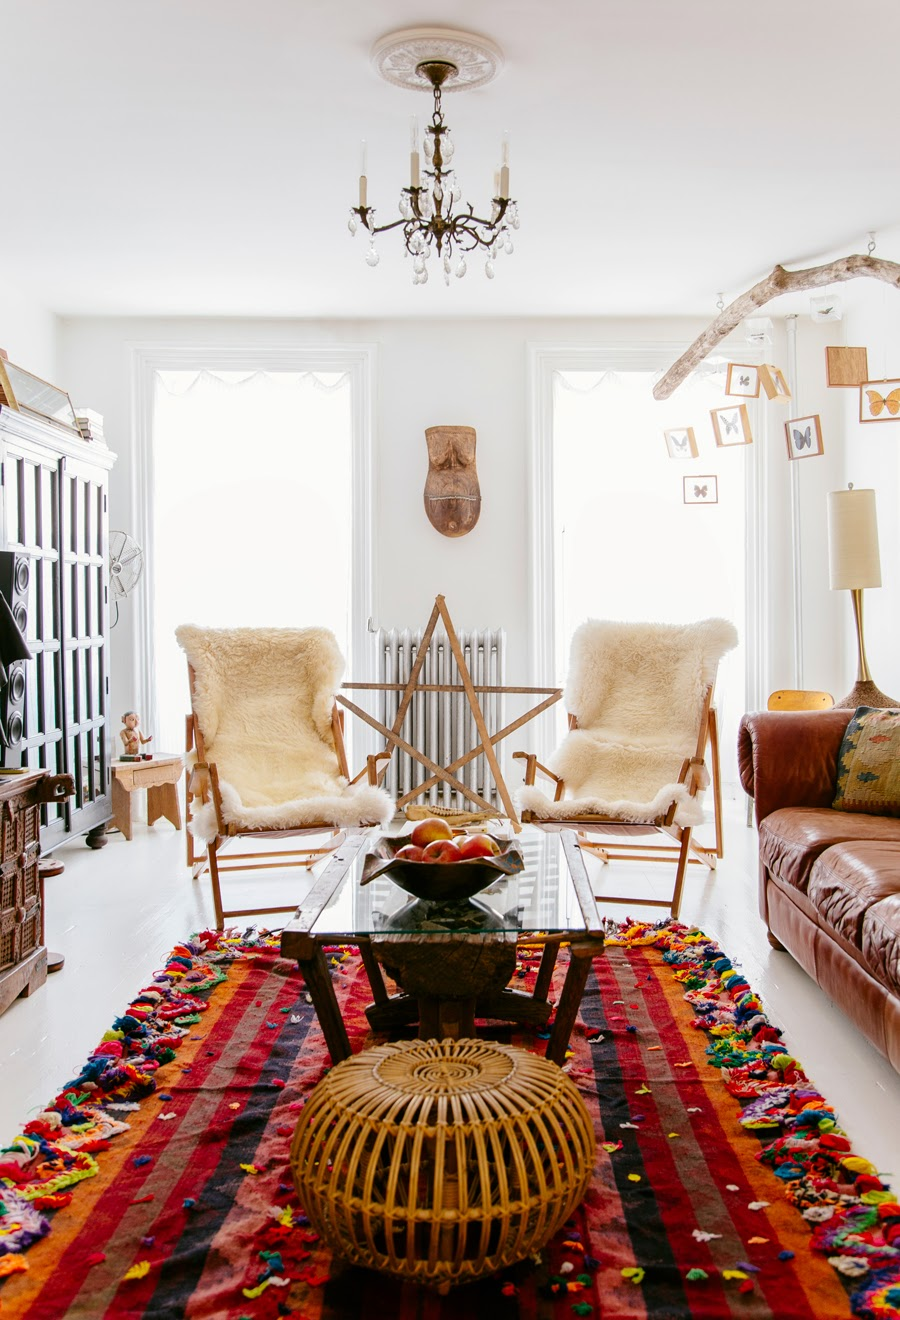 Interior Boho Design Living Room Home Decor: Inspiration: Bohemian Interiors